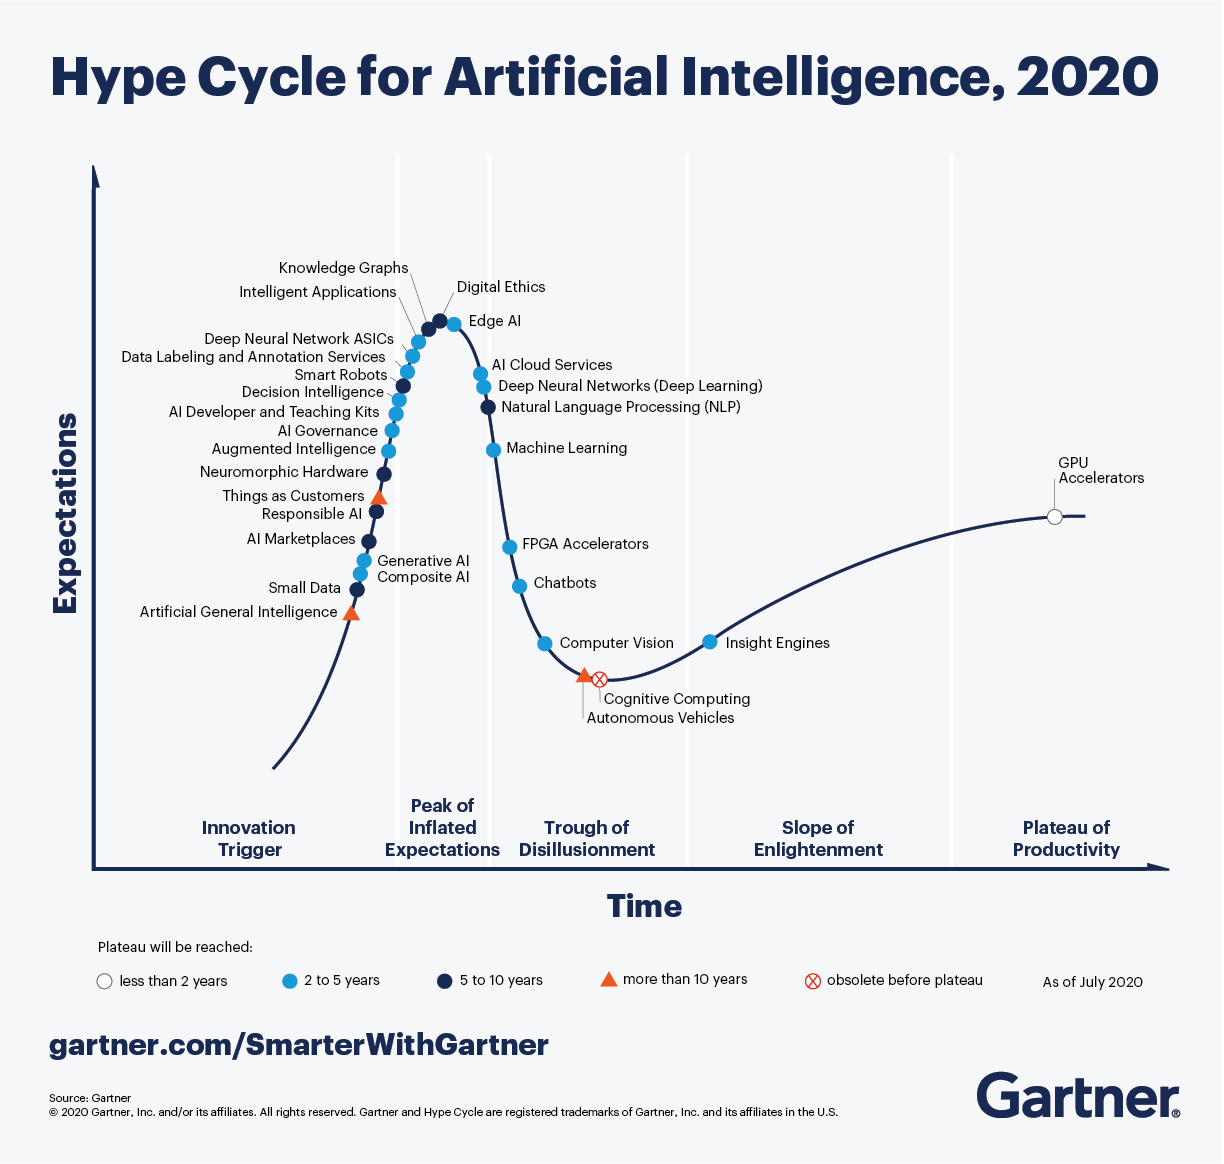 Gartner Hype Cycle for Artificial Intelligence, 2020.